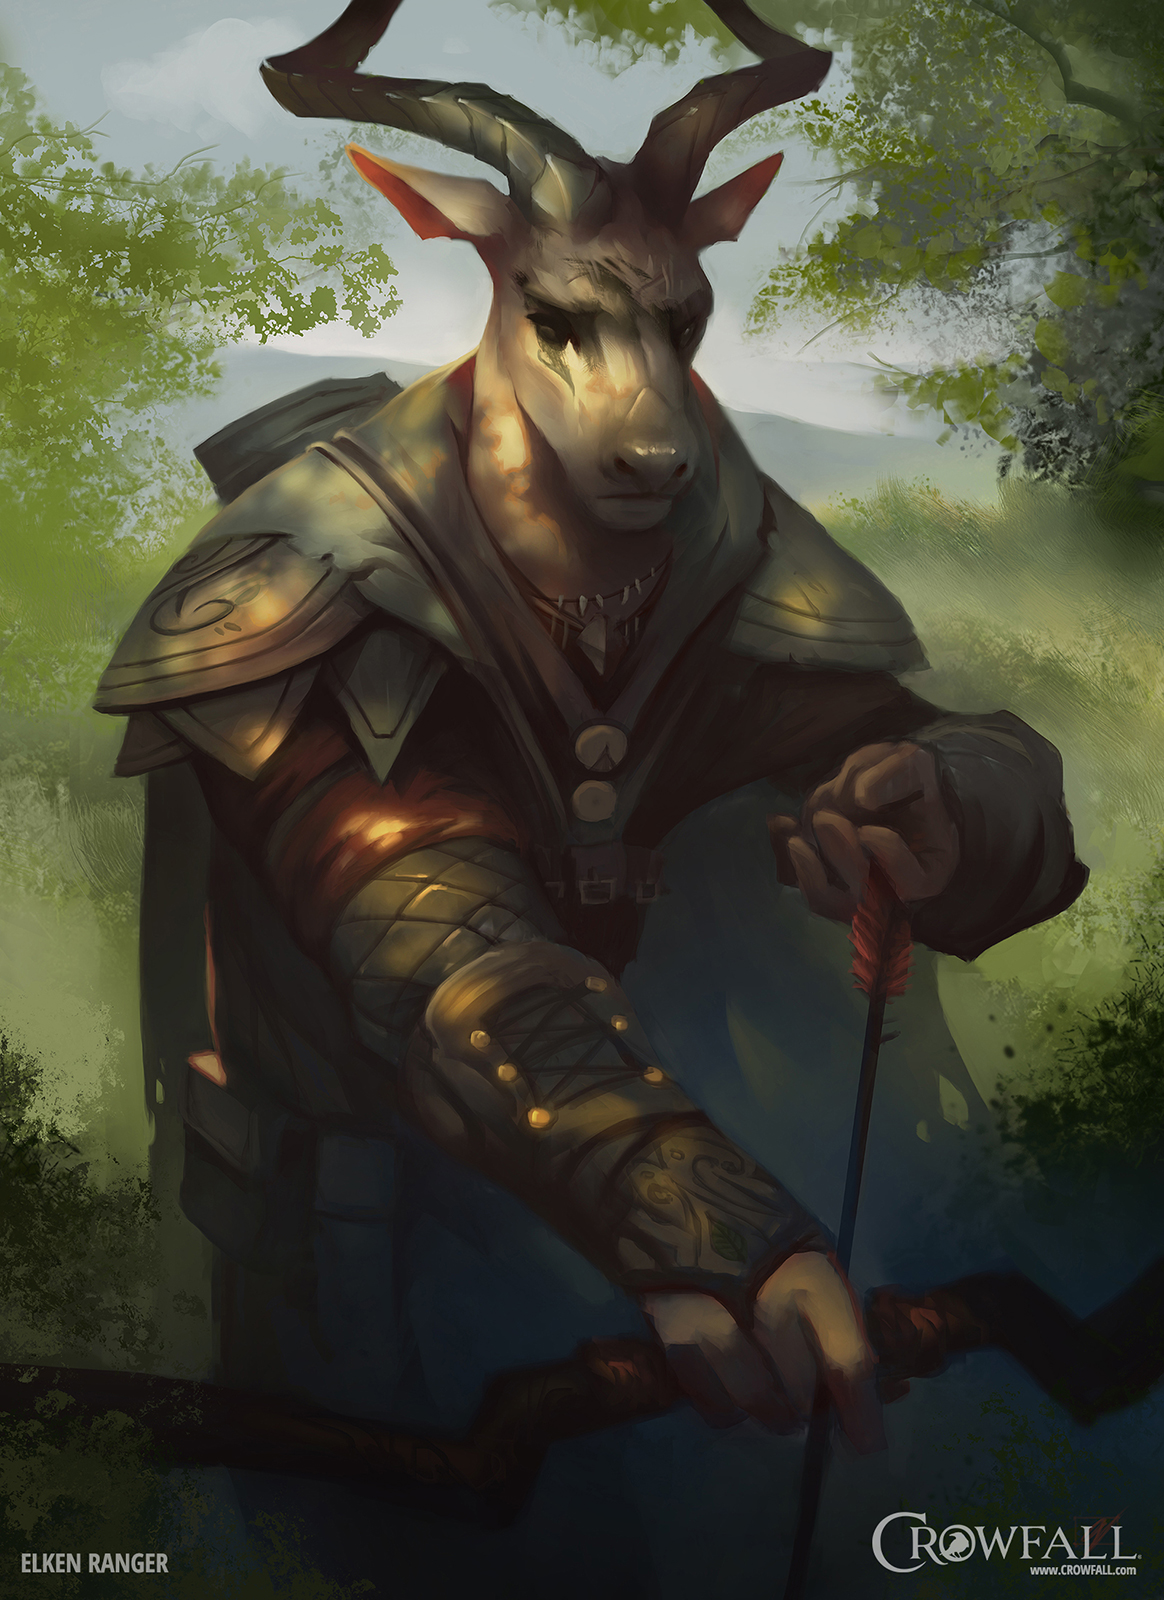 Crowfall_ElkenRanger_Watermarked.jpg